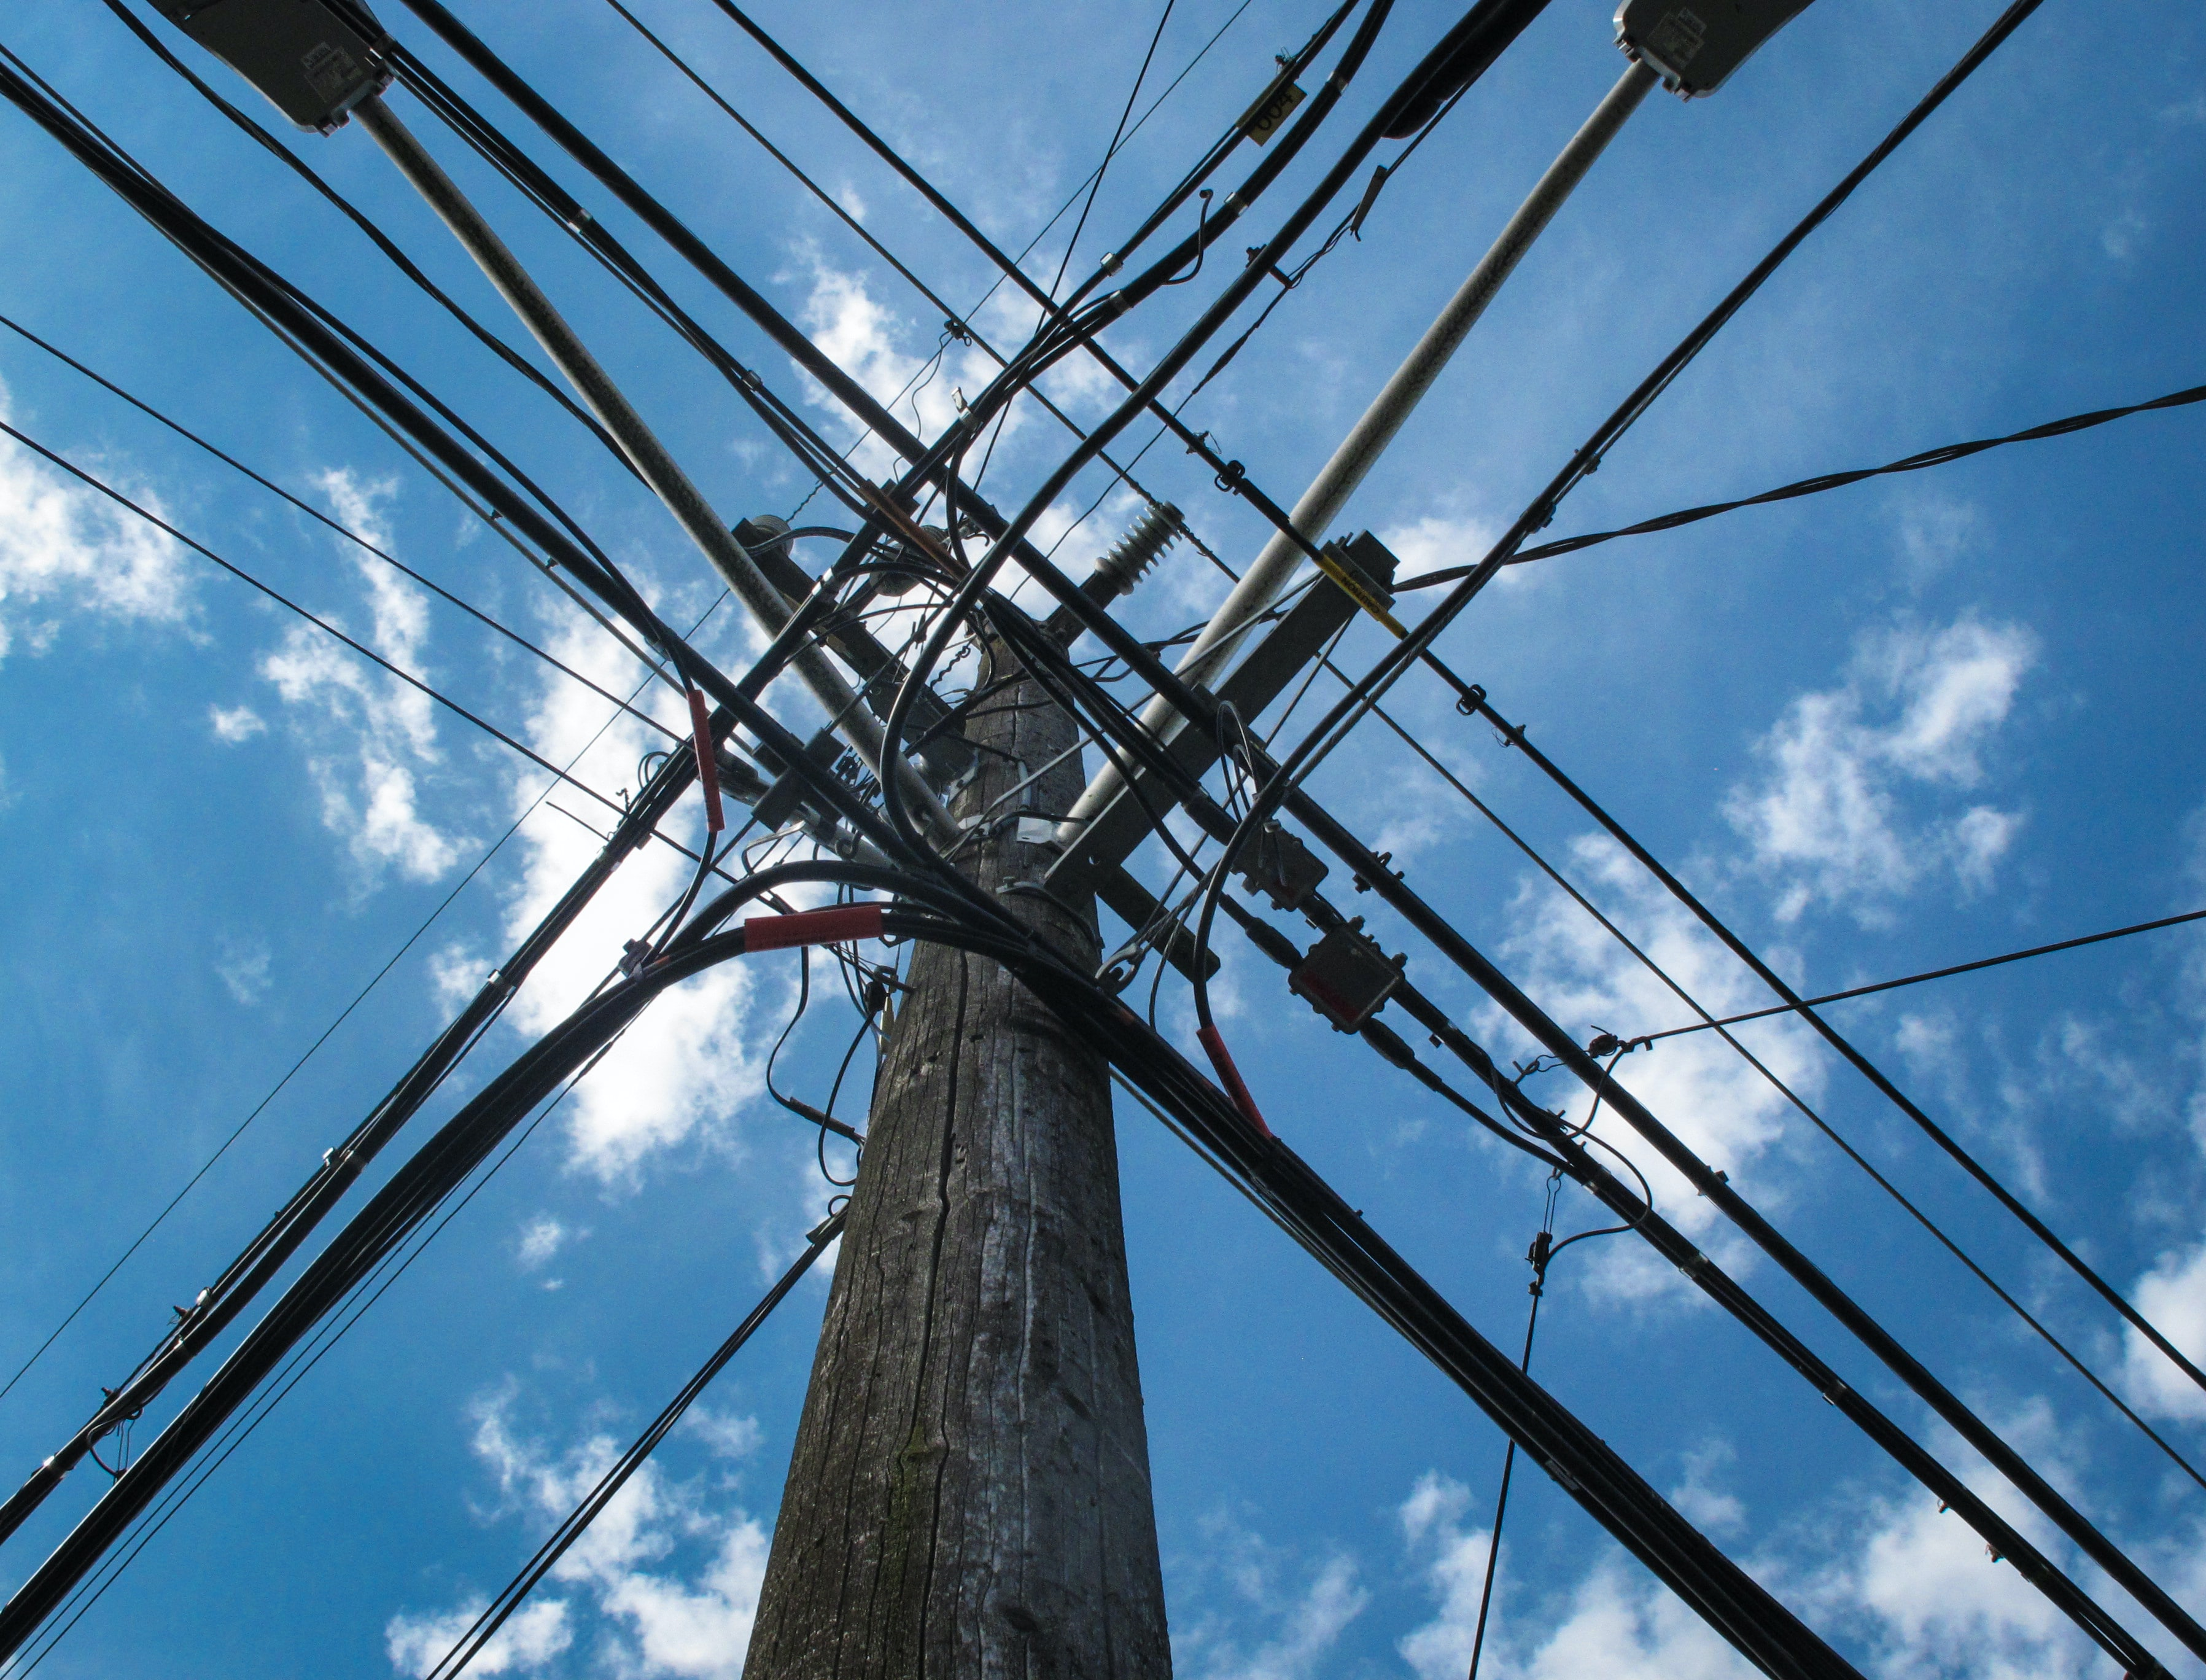 Industrial power lines and electrical wires form a grid against a blue sky